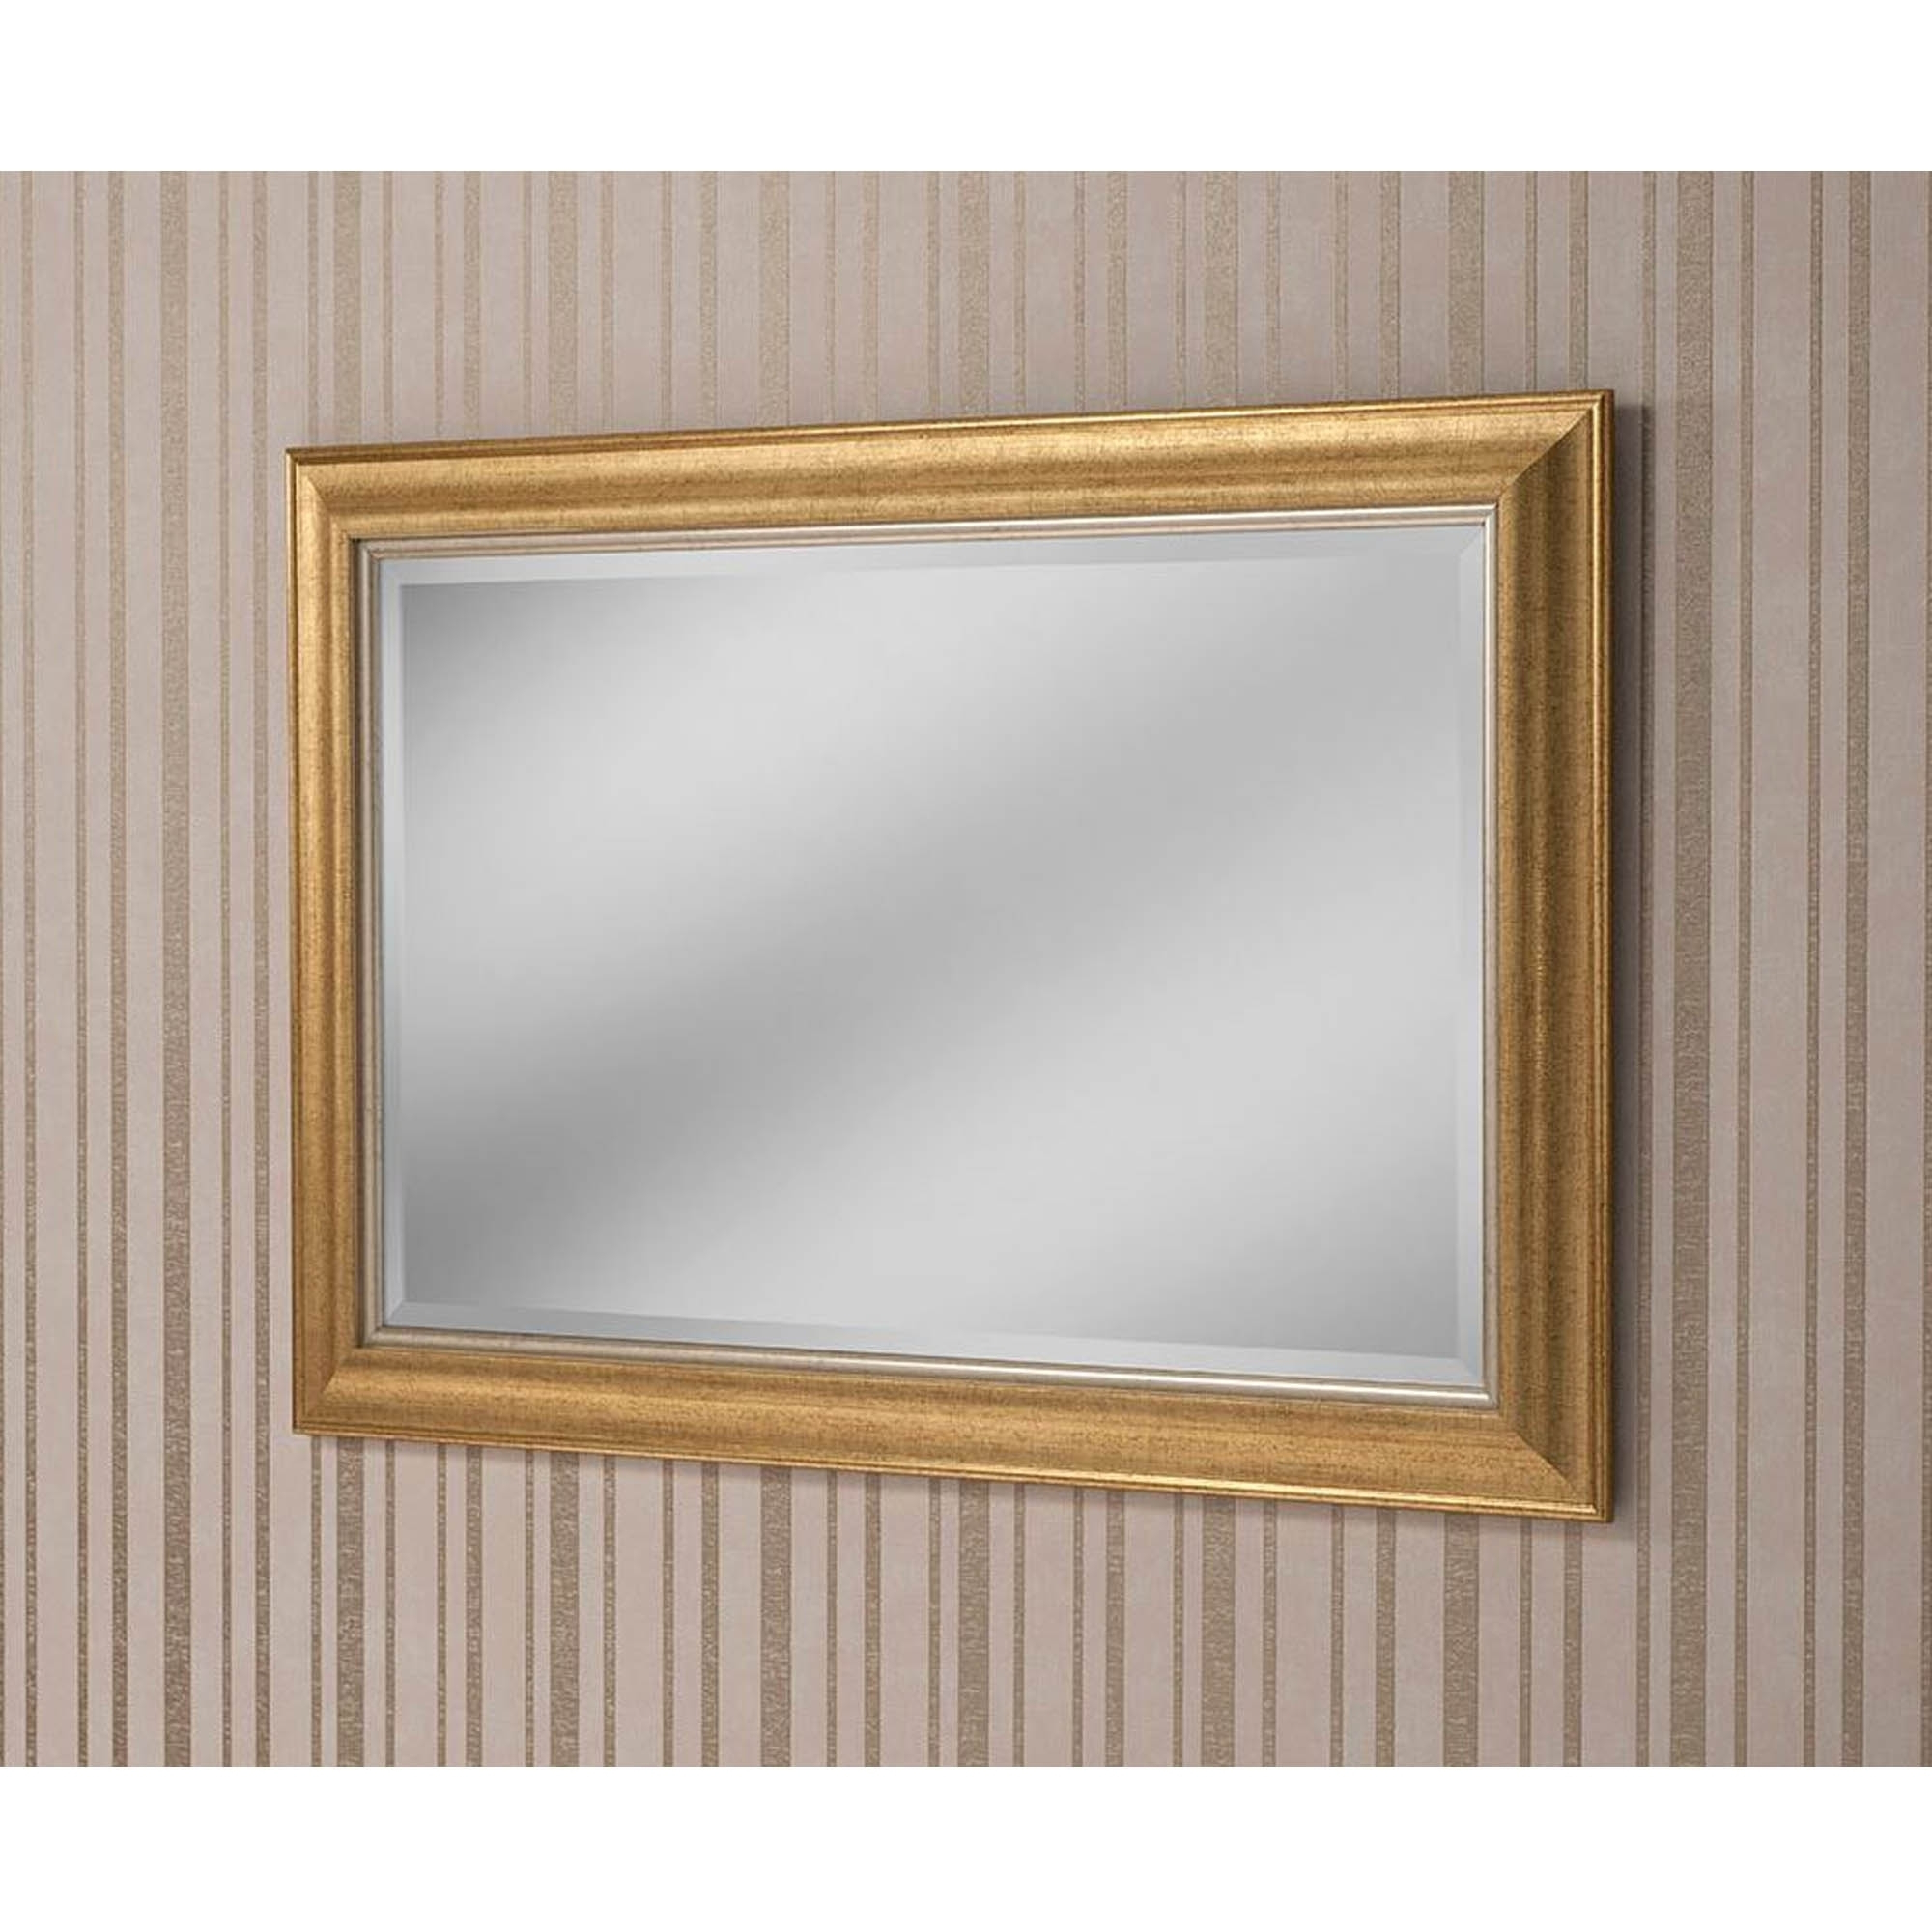 Decorative Gold Rectangular Wall Mirror Throughout Widely Used Rectangular Wall Mirrors (View 13 of 20)